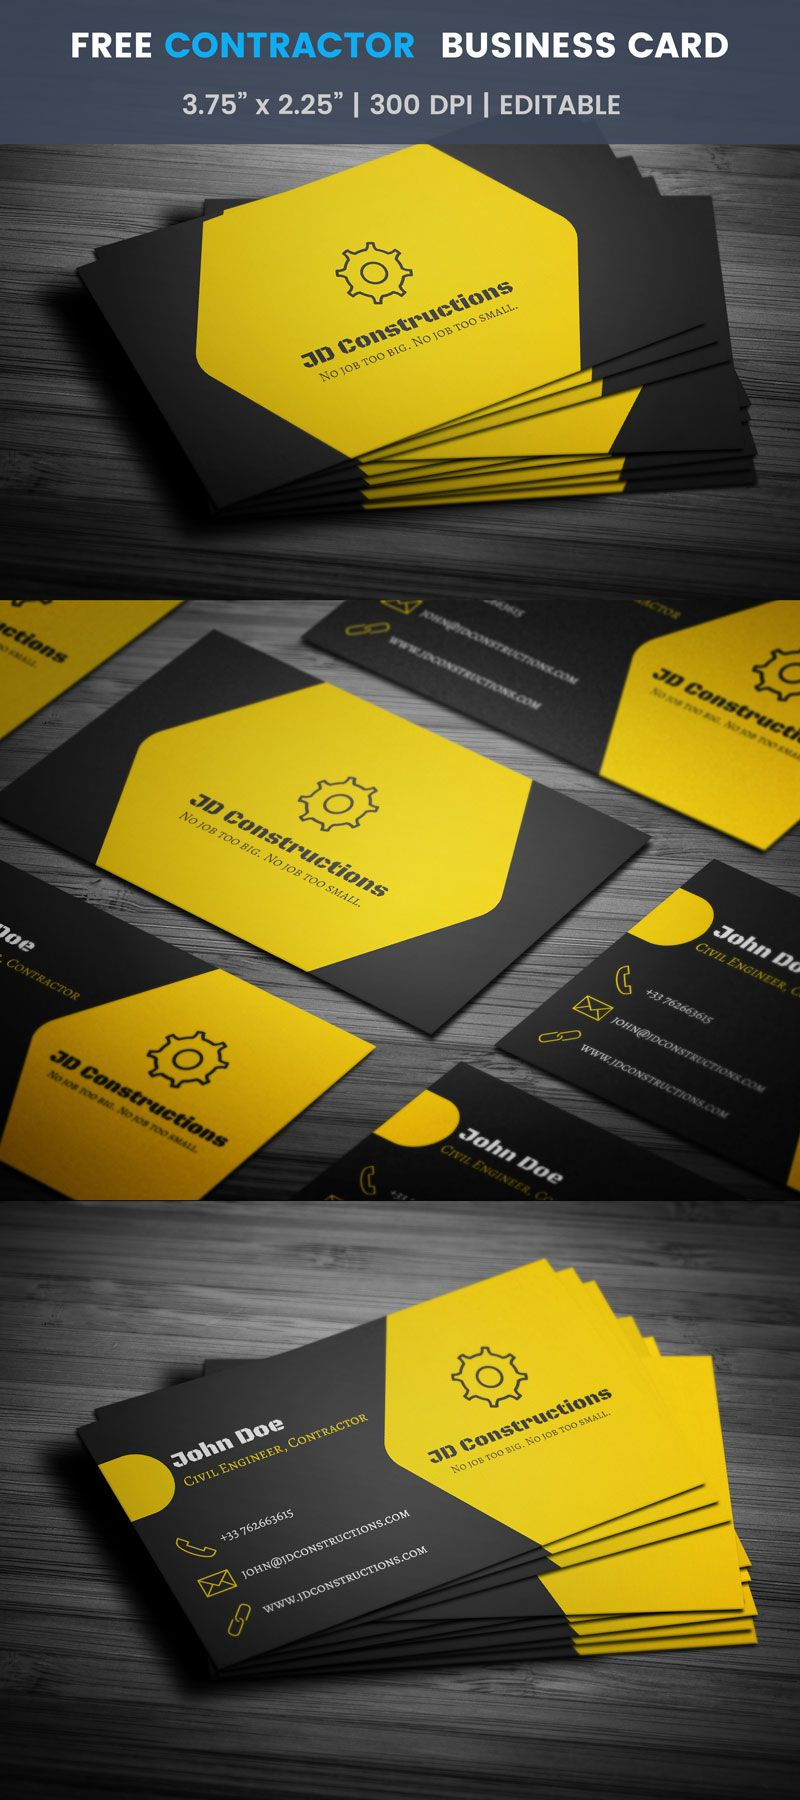 Civil engineer and contractor business card full preview free civil engineer and contractor business card full preview wajeb Choice Image